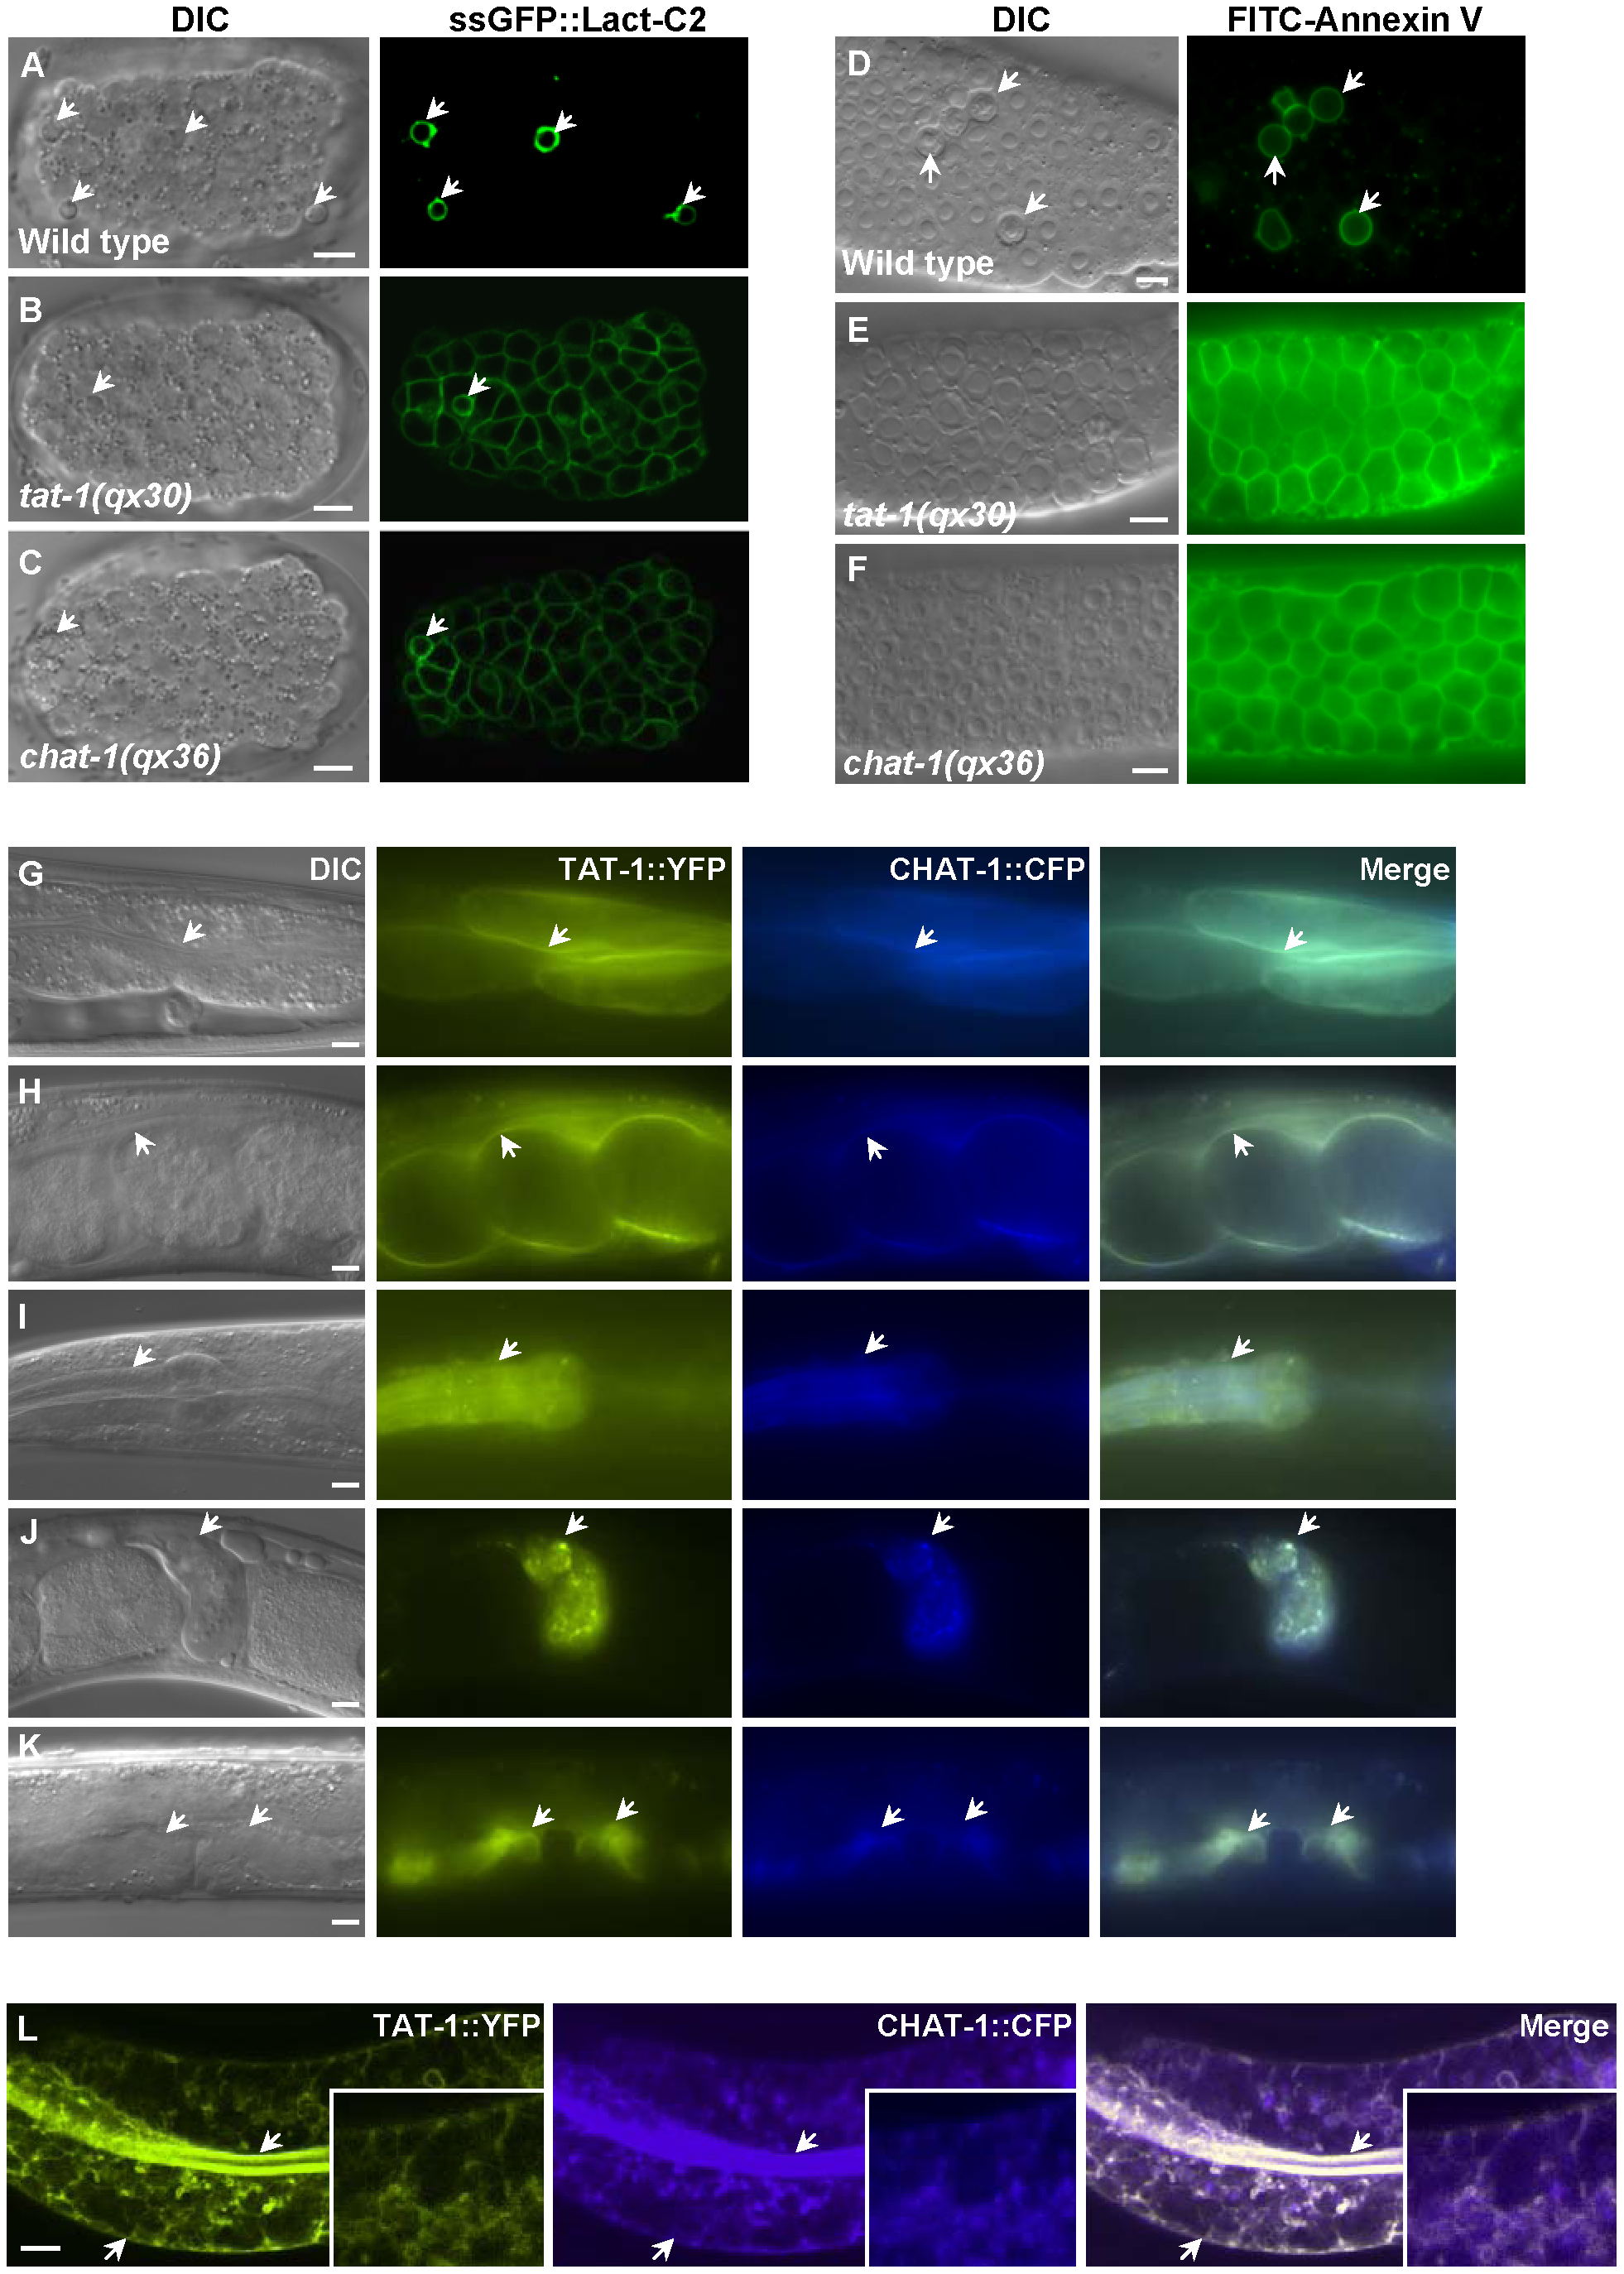 CHAT-1 and TAT-1 regulate plasma membrane PS asymmetry and express in the same tissues.